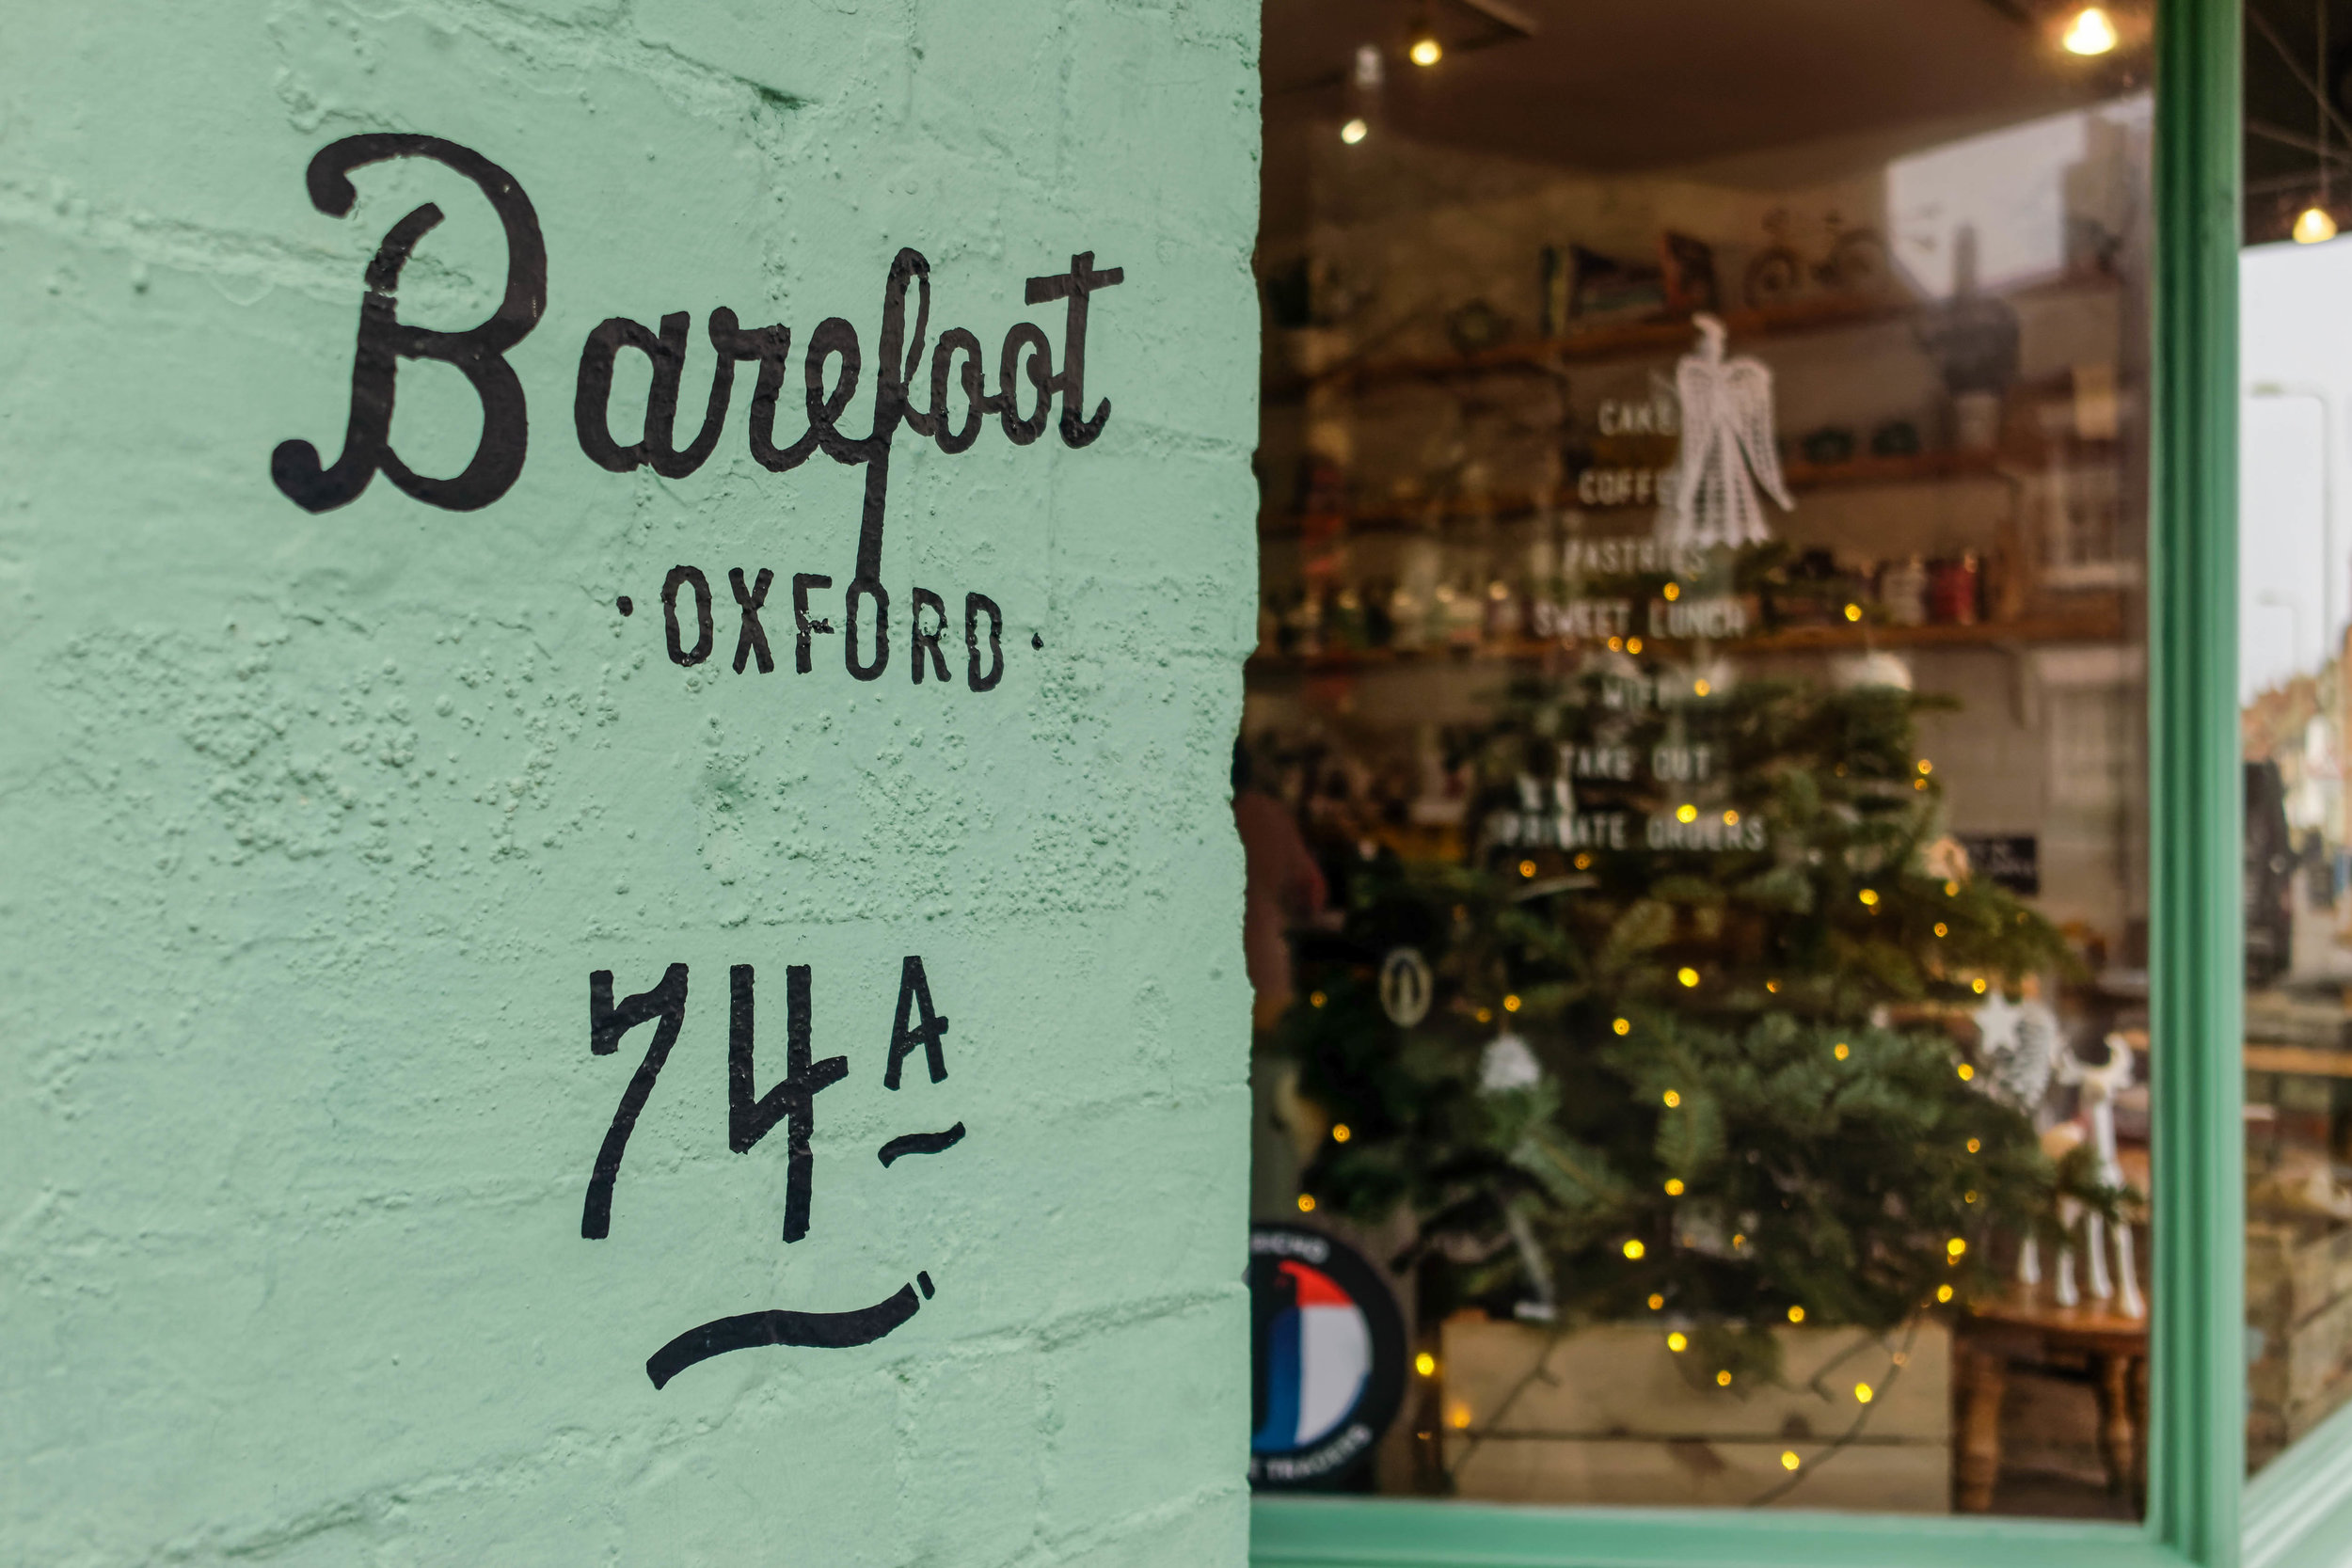 Barefoot's unmistakable seafoam green front features a small Christmas tree beside the usual selection of cakes and breads.